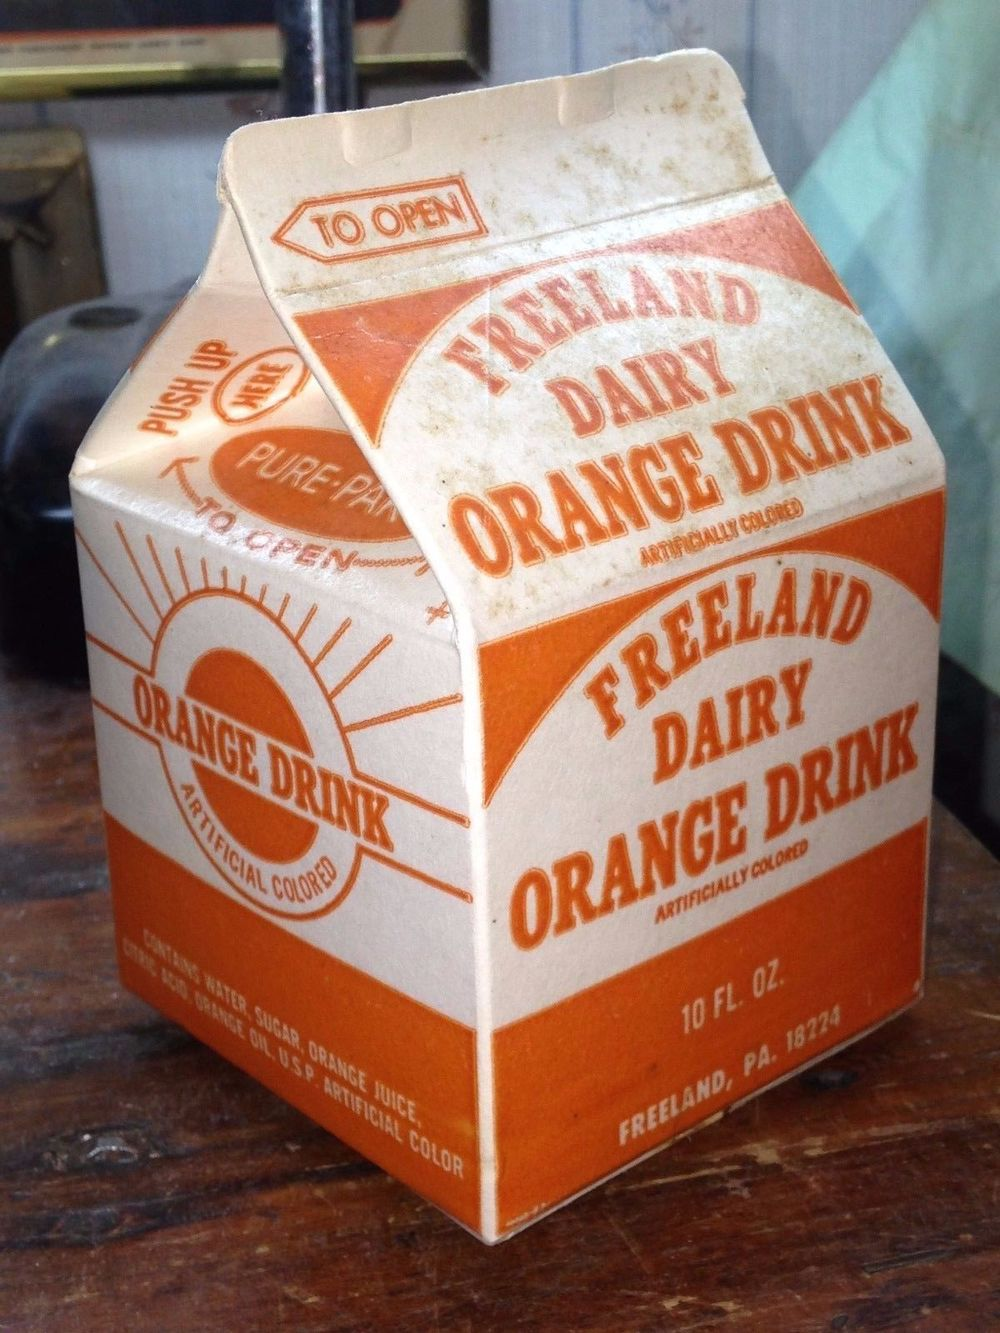 Freeland Dairy Orange Drink